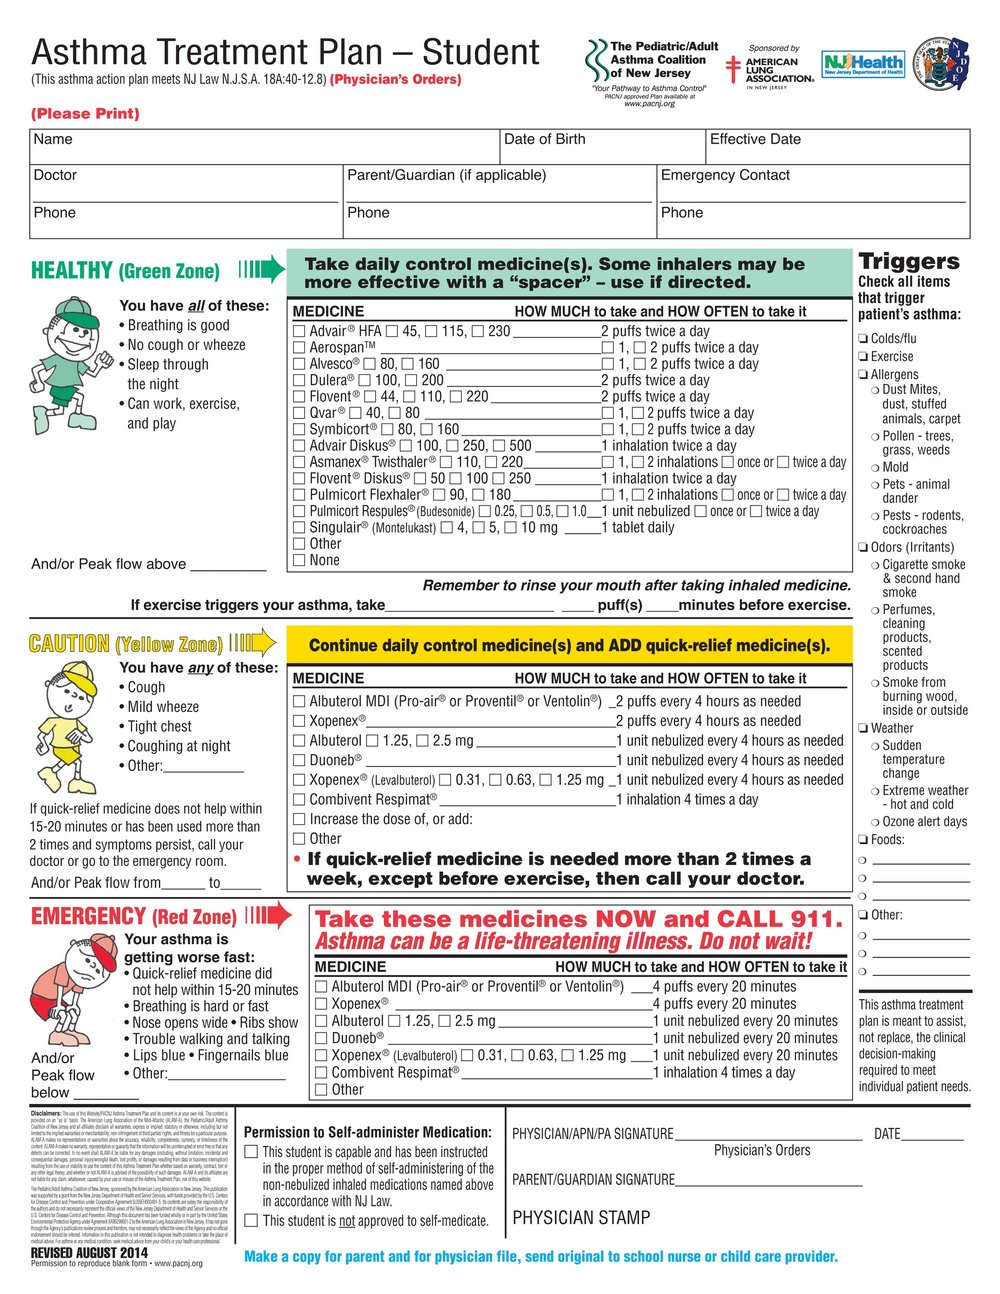 Asthma Action Plan Form_Page_1-710.jpg